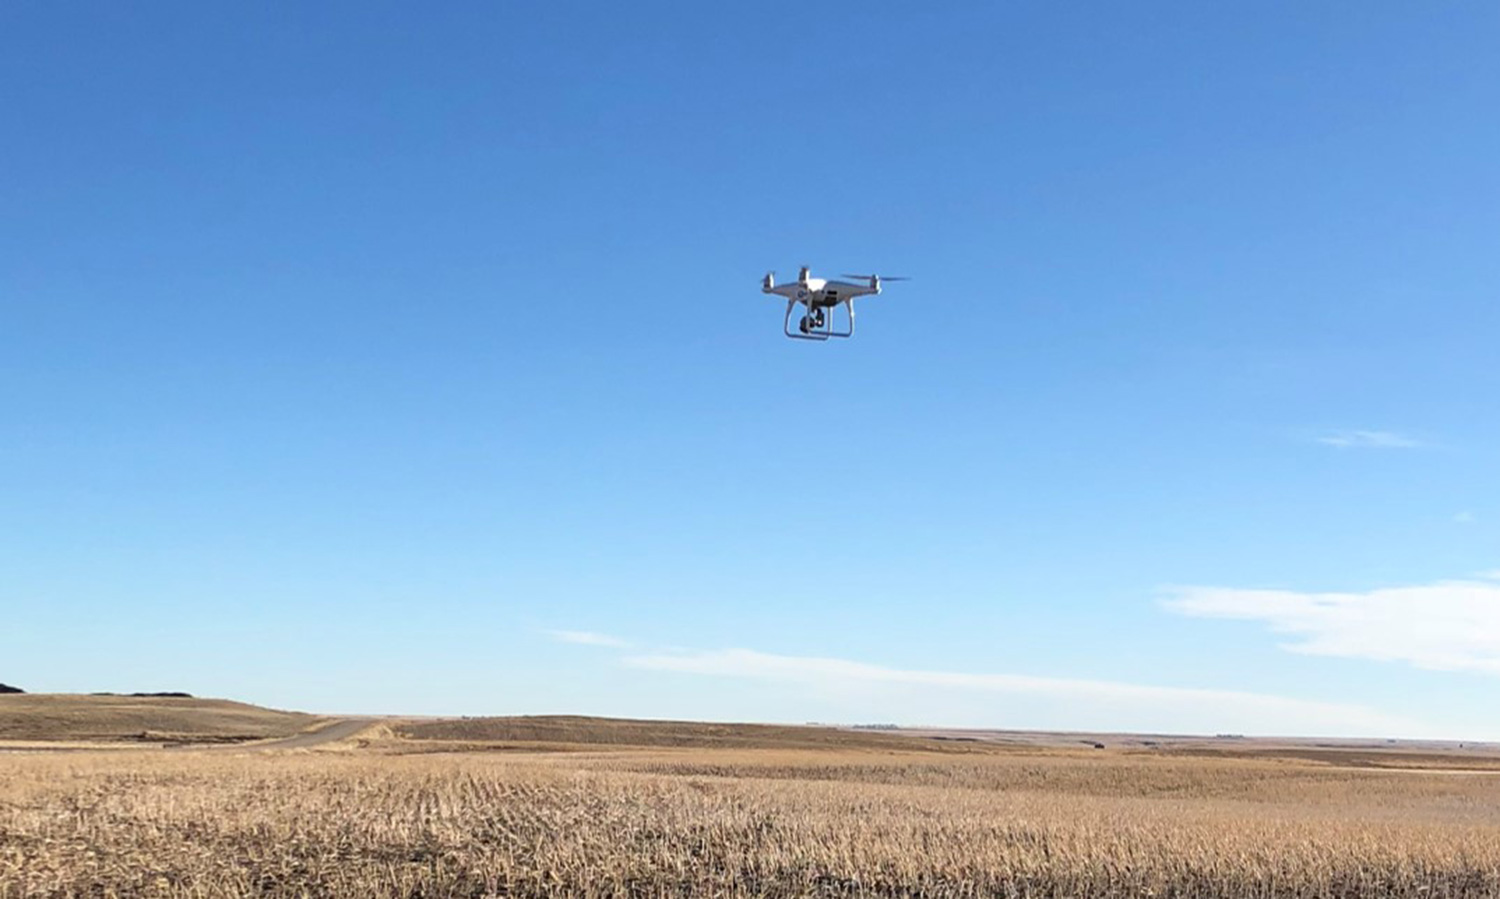 Image of UAV or drone in flight Quest UAV mapping services